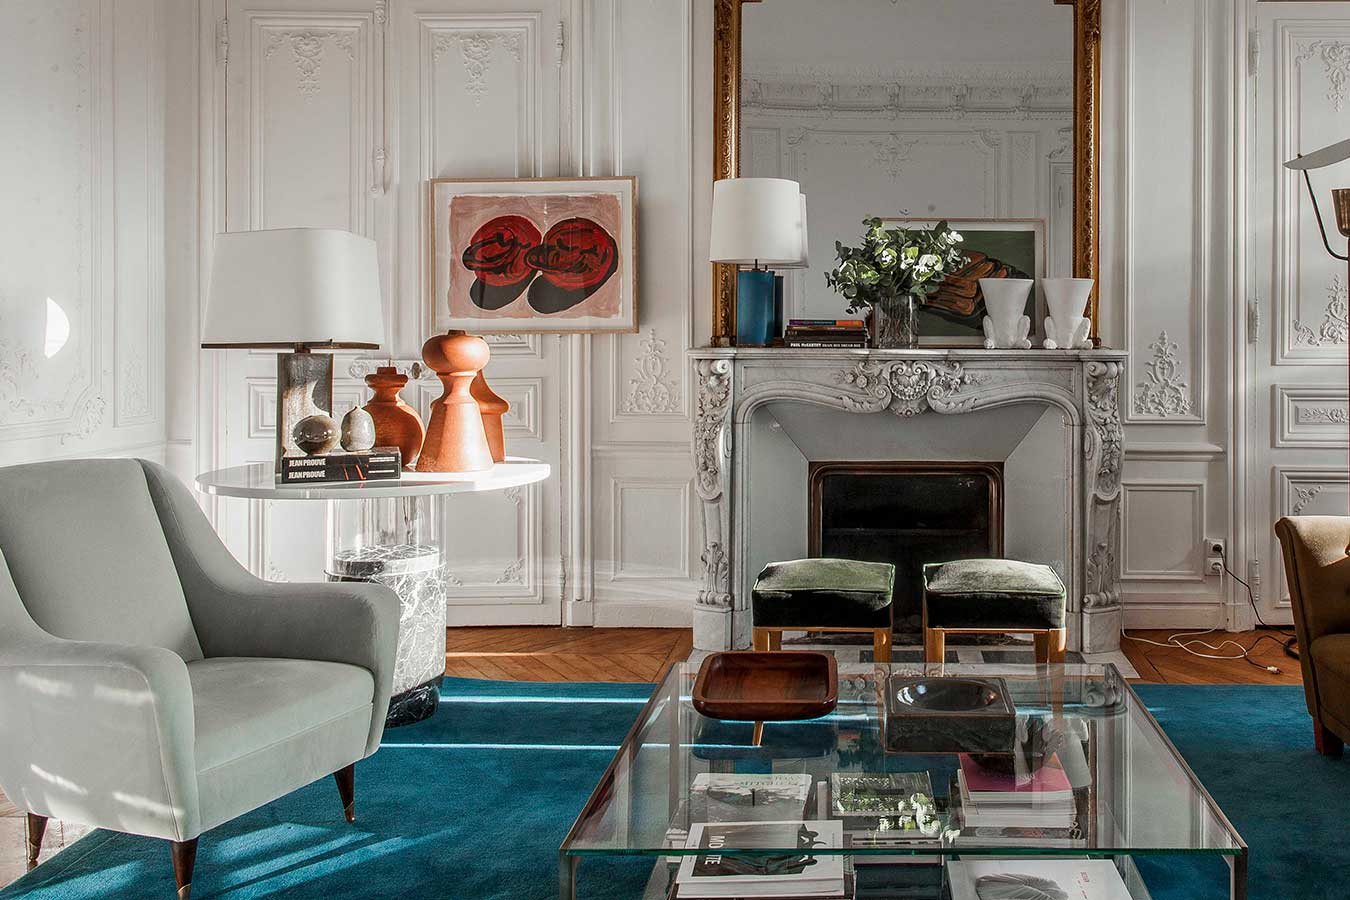 Living room with white painted panelling and a deep teal rug